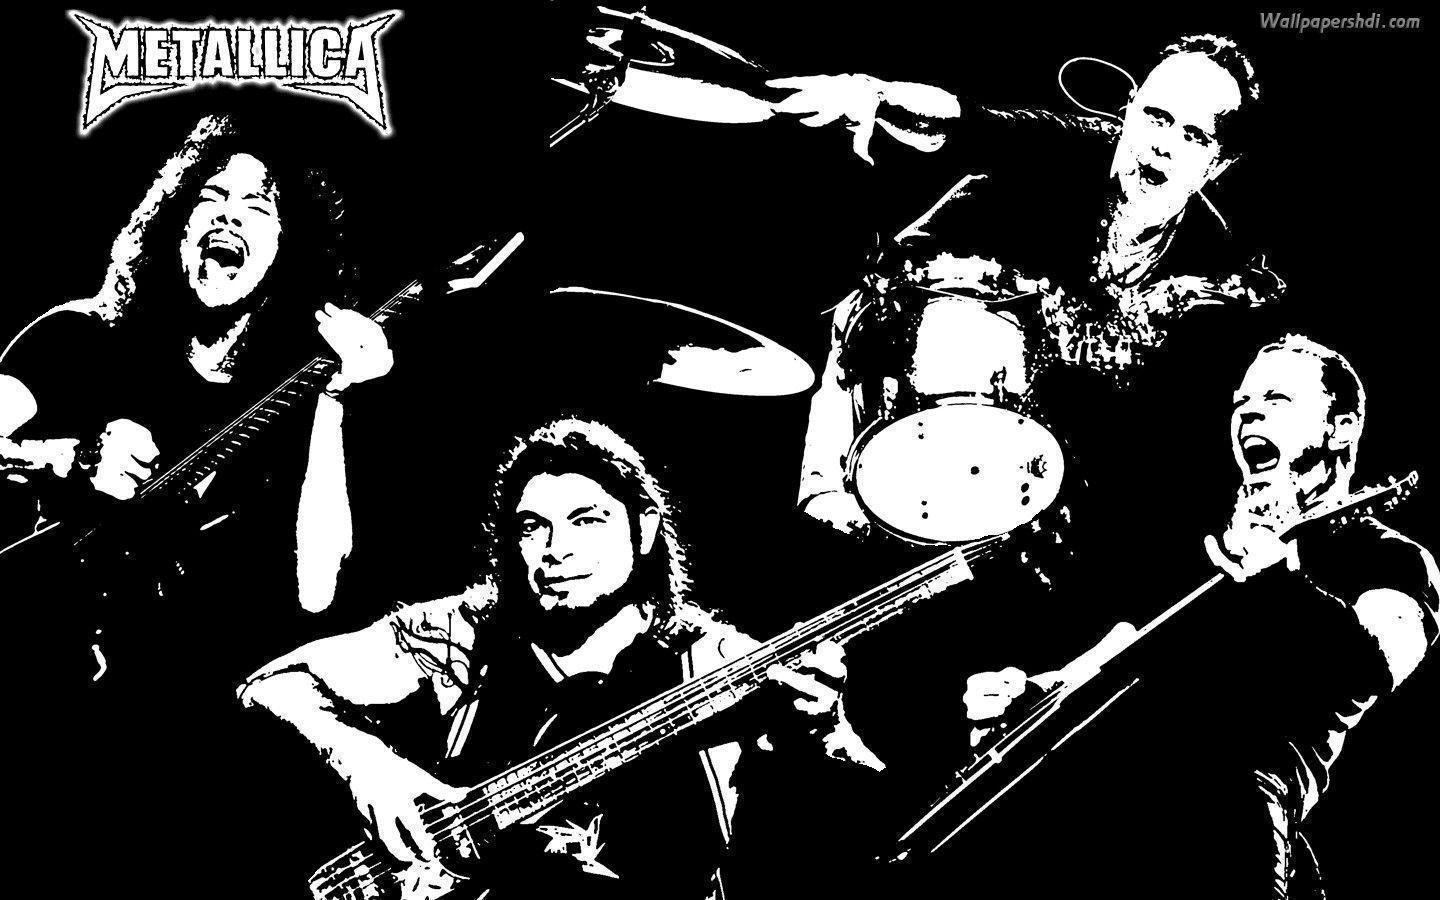 Metallica Group Artist Rendering HD Wallpapers